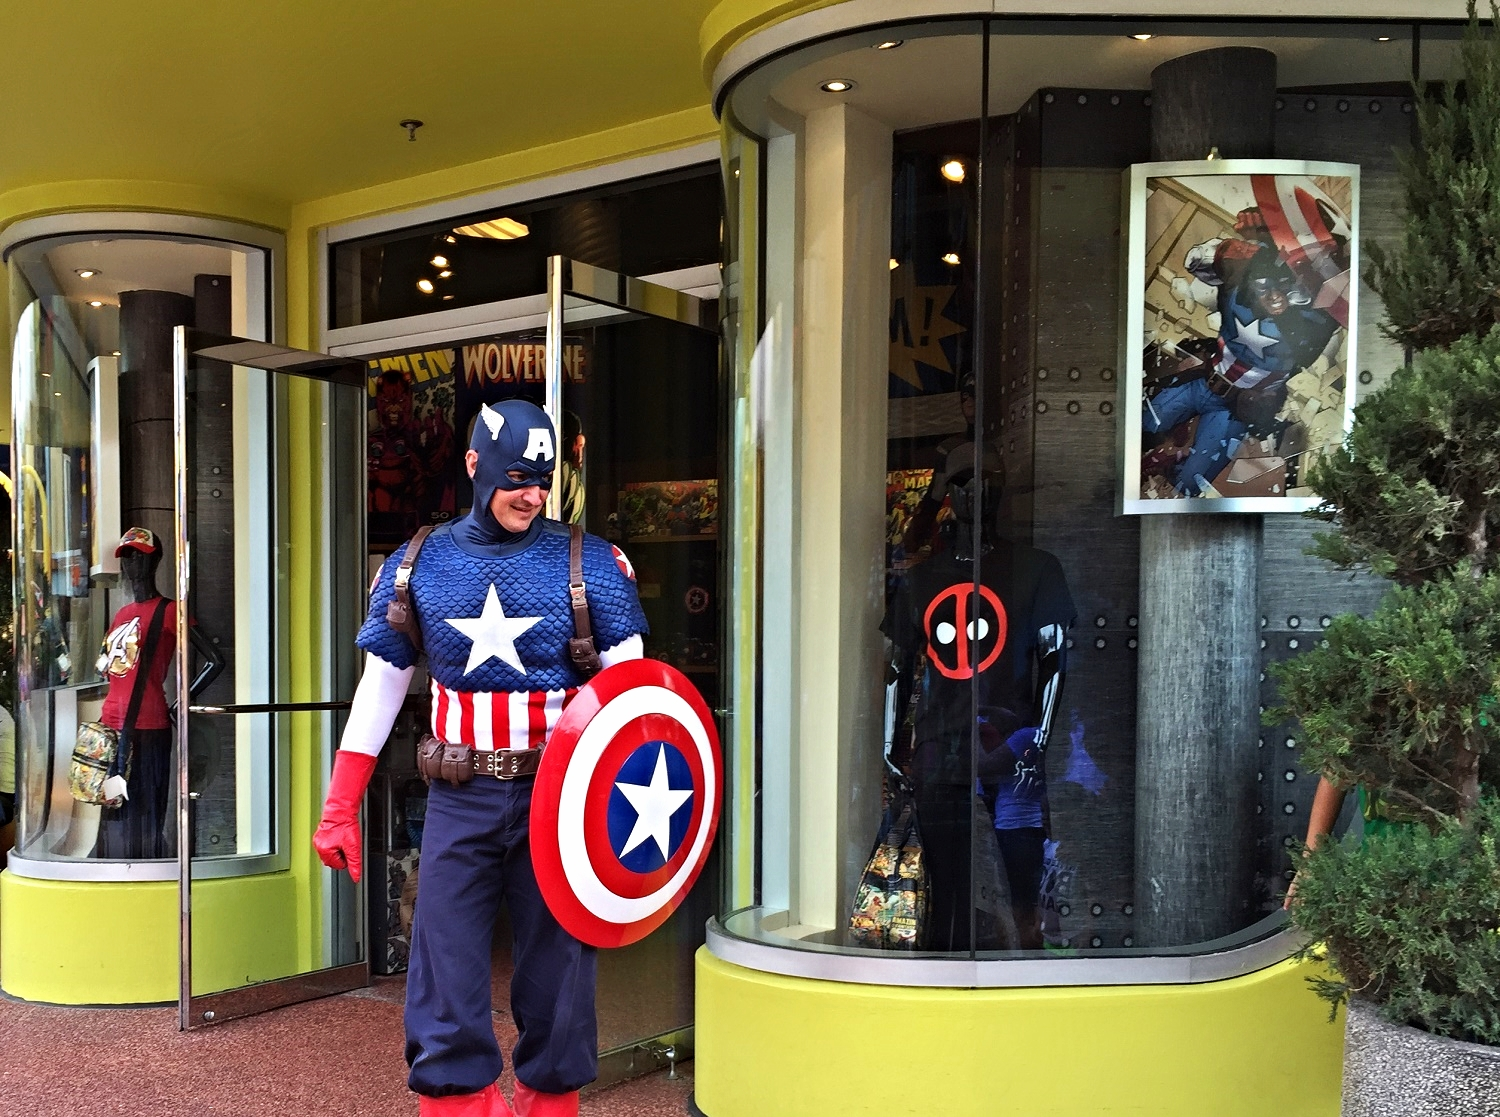 Some of the characters that you can meet in Universal's Islands of Adventure include Marvel superheroes and villains, Seuss characters, comic strip characters, and Wizarding World characters.